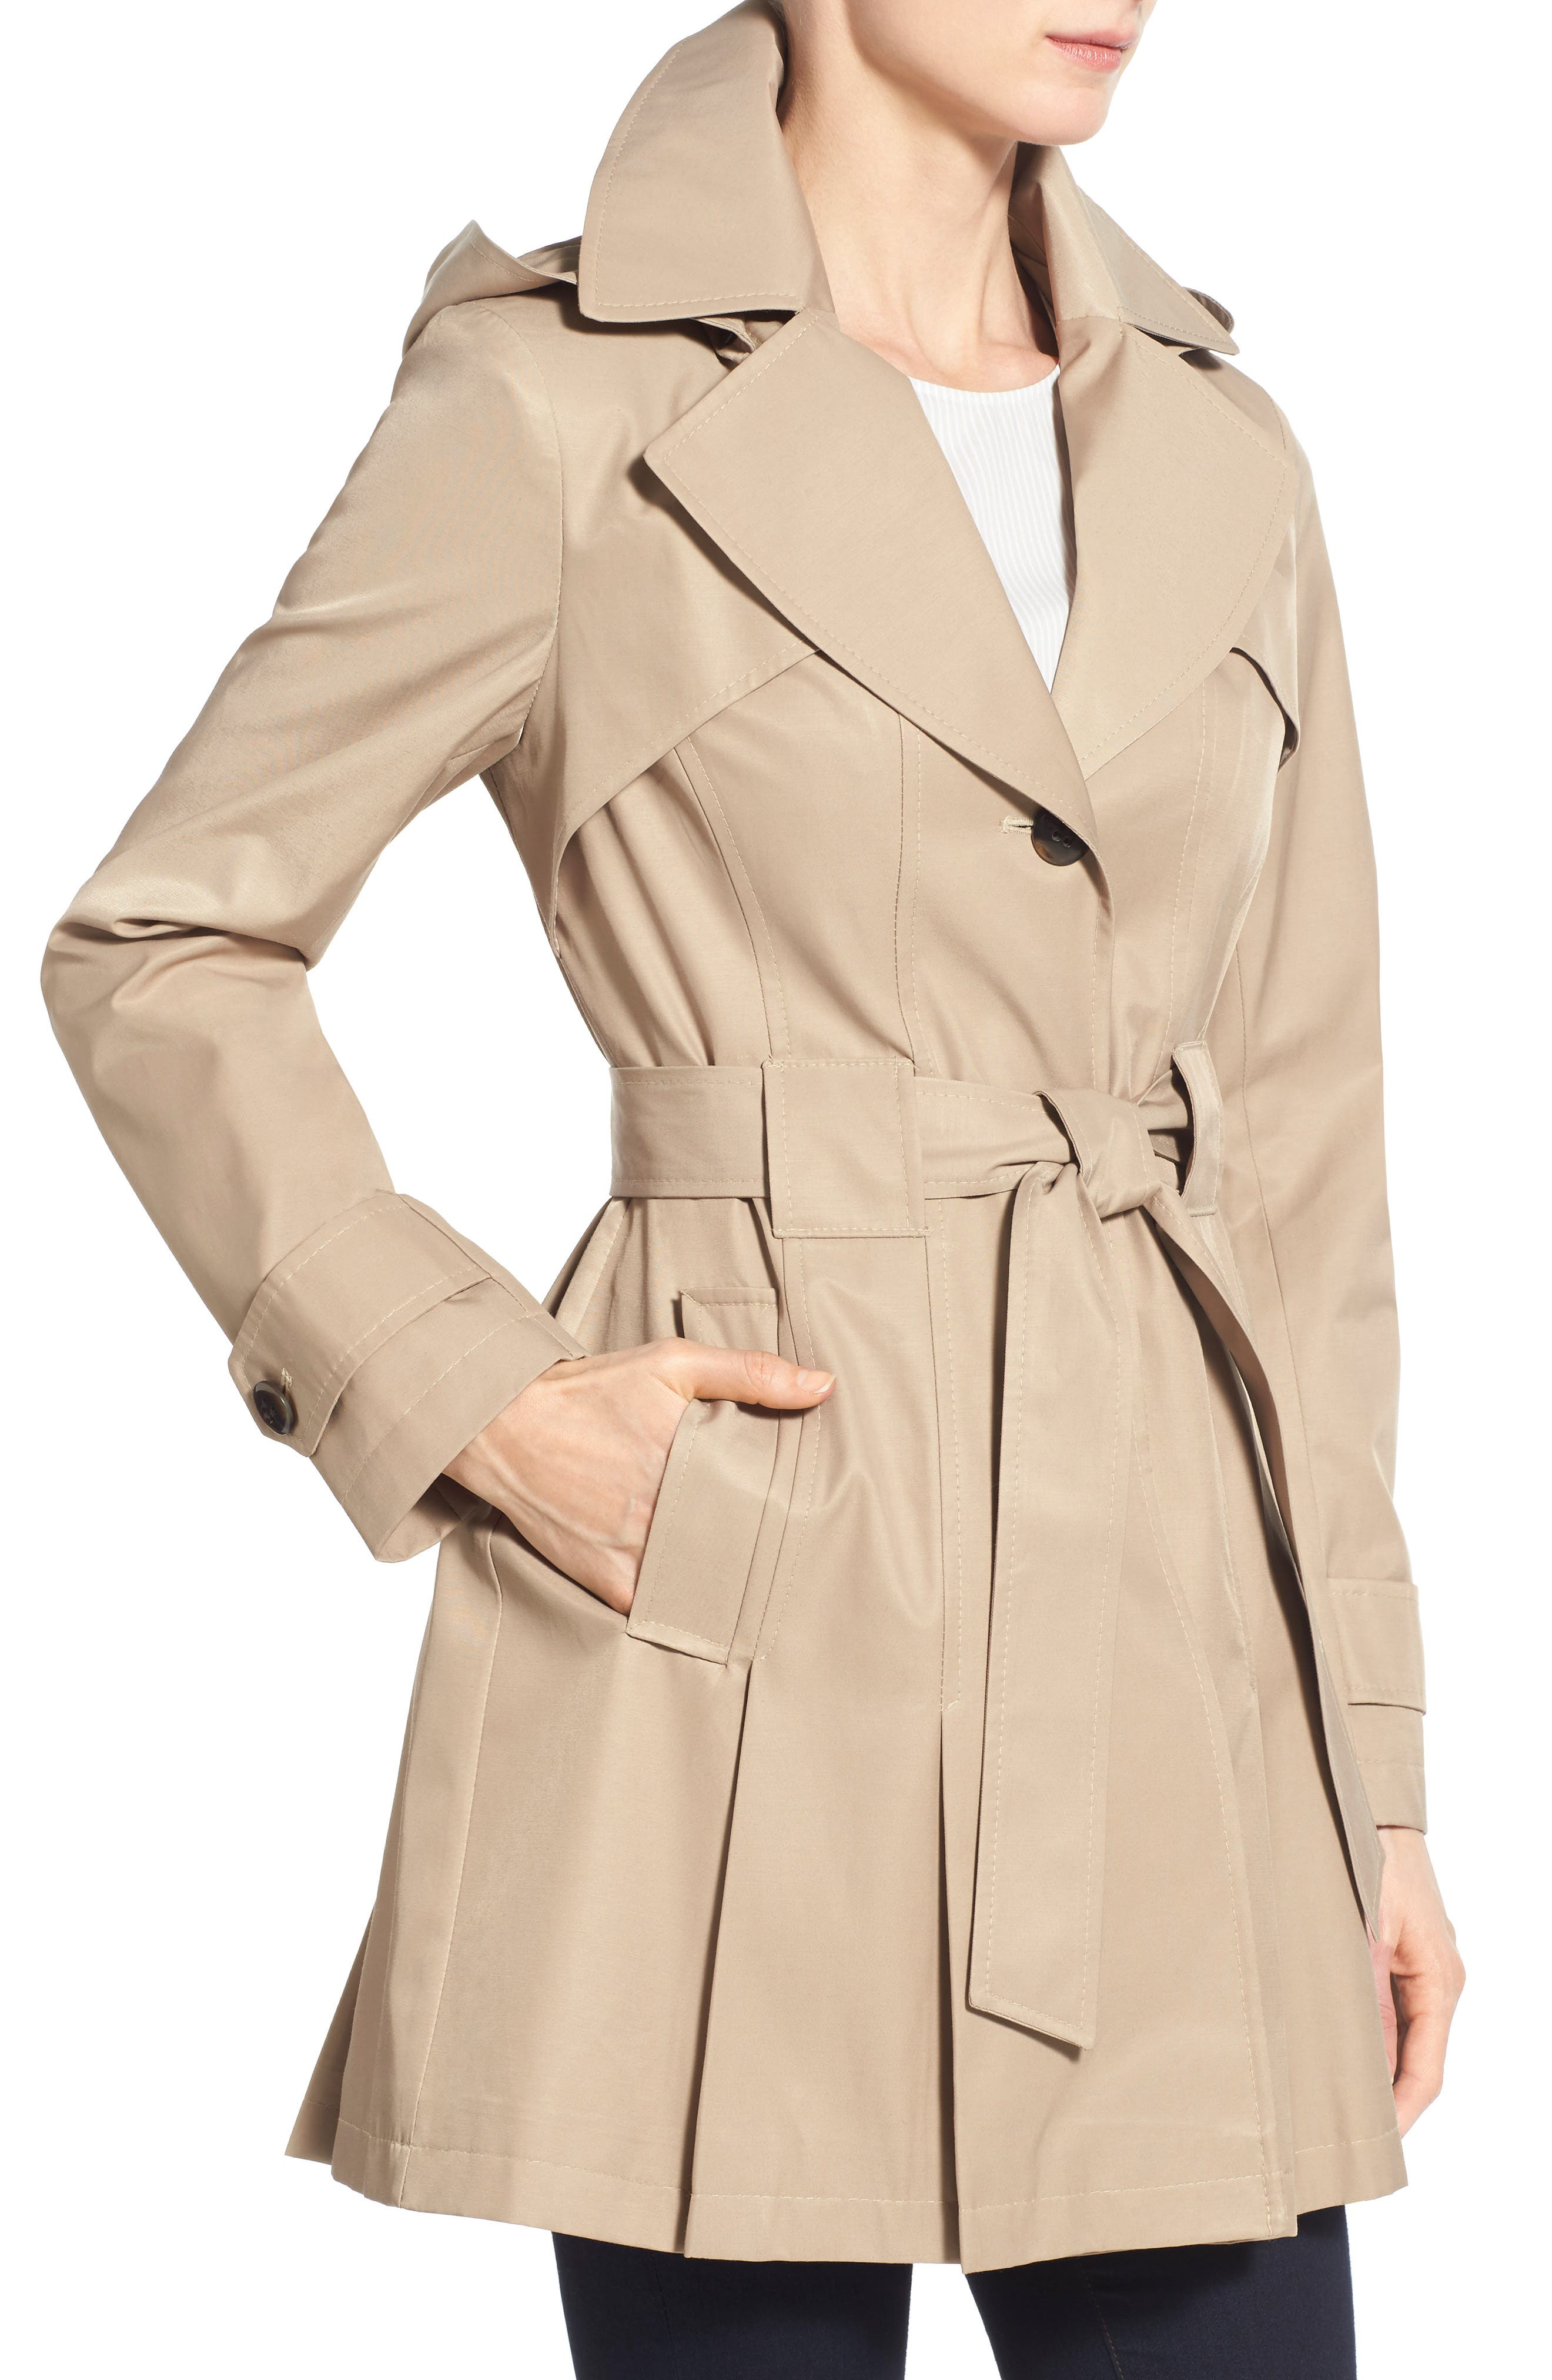 'Scarpa' Hooded Single Breasted Trench Coat,                             Alternate thumbnail 36, color,